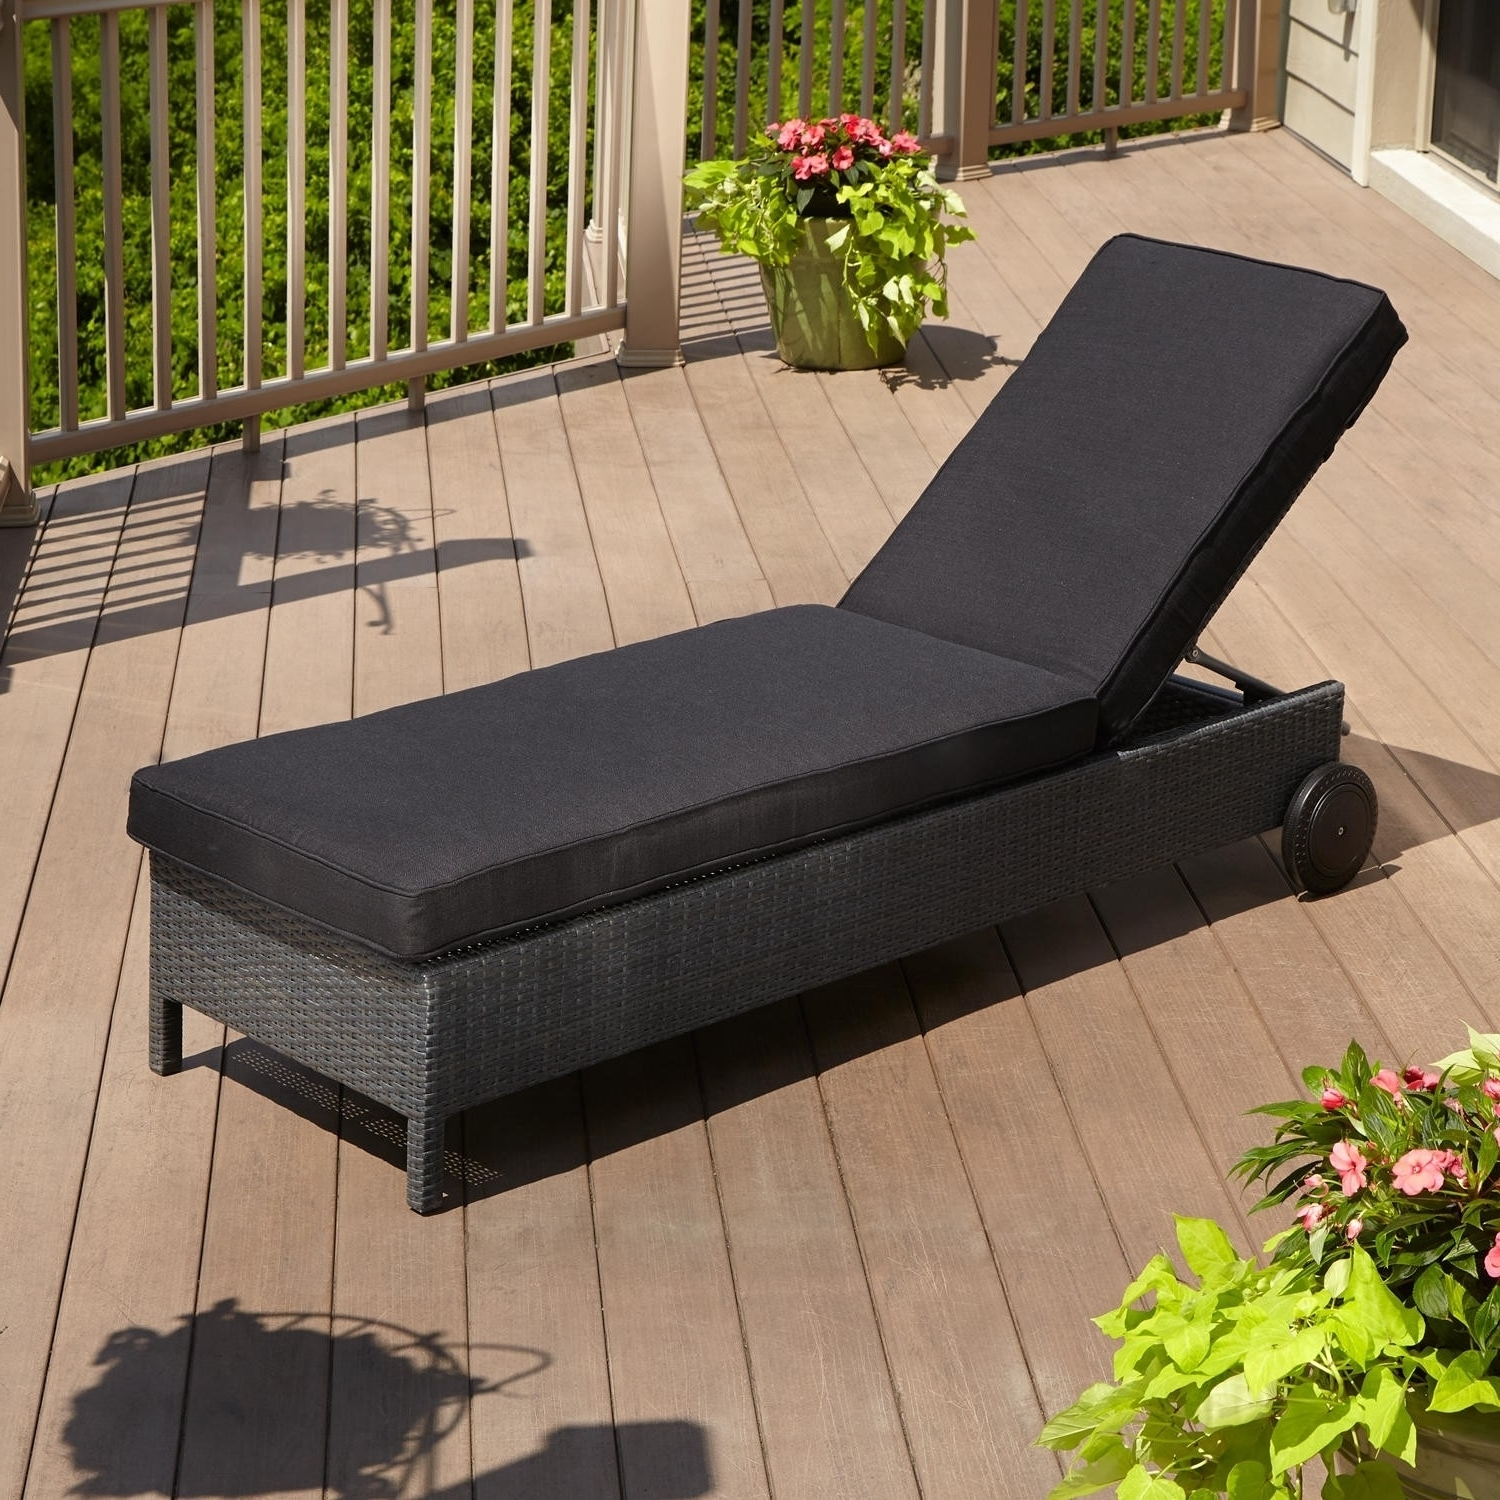 Convertible Chair : Outdoor Garden Chair Cushions Lounge Seat Intended For 2018 Inexpensive Outdoor Chaise Lounge Chairs (View 13 of 15)